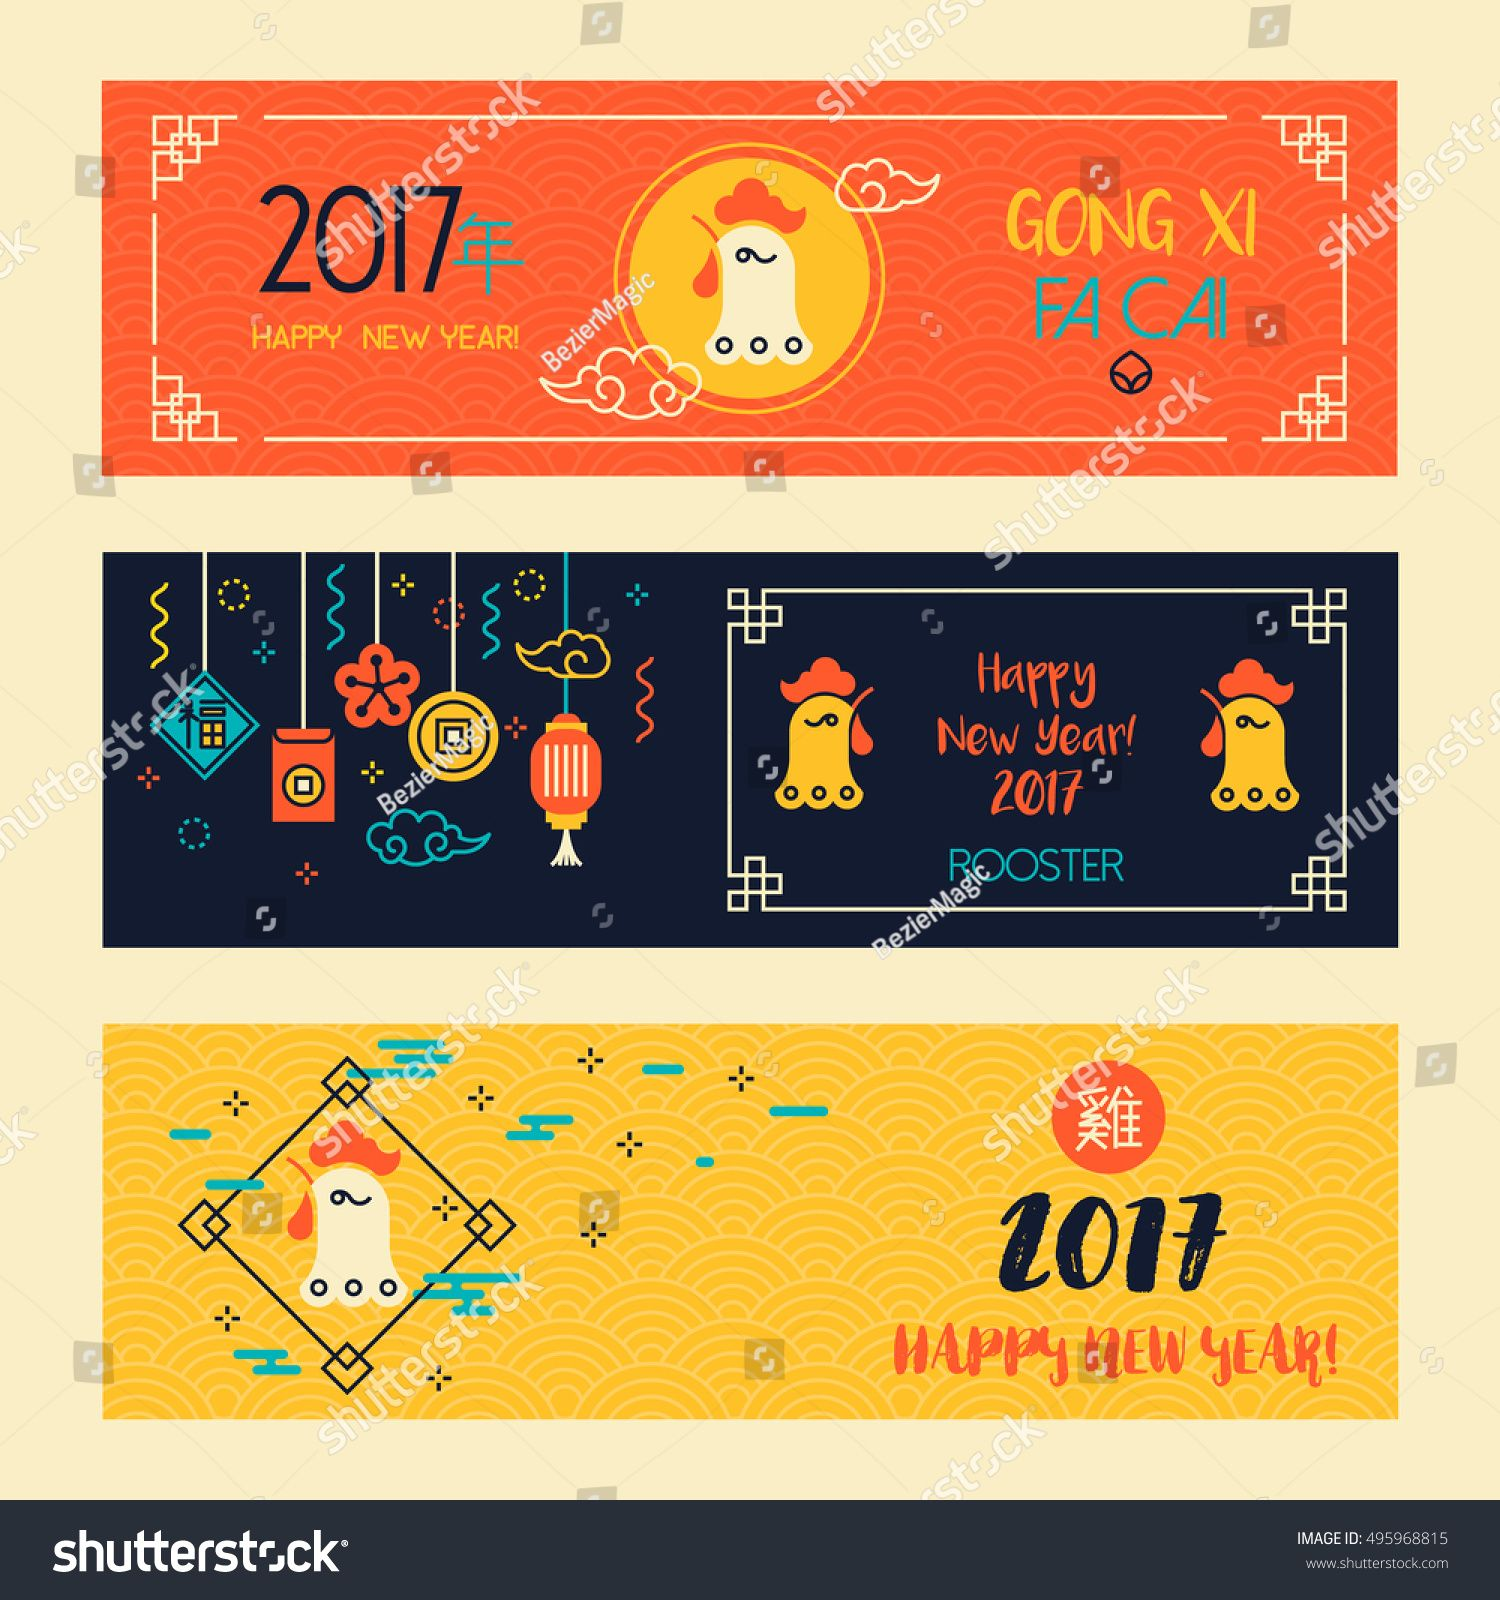 Stock vector banners set with linear chinese new year rooster banners set with linear chinese new year rooster modern red yellow and dark blue decorations symbol of 2017 new year rooster m4hsunfo